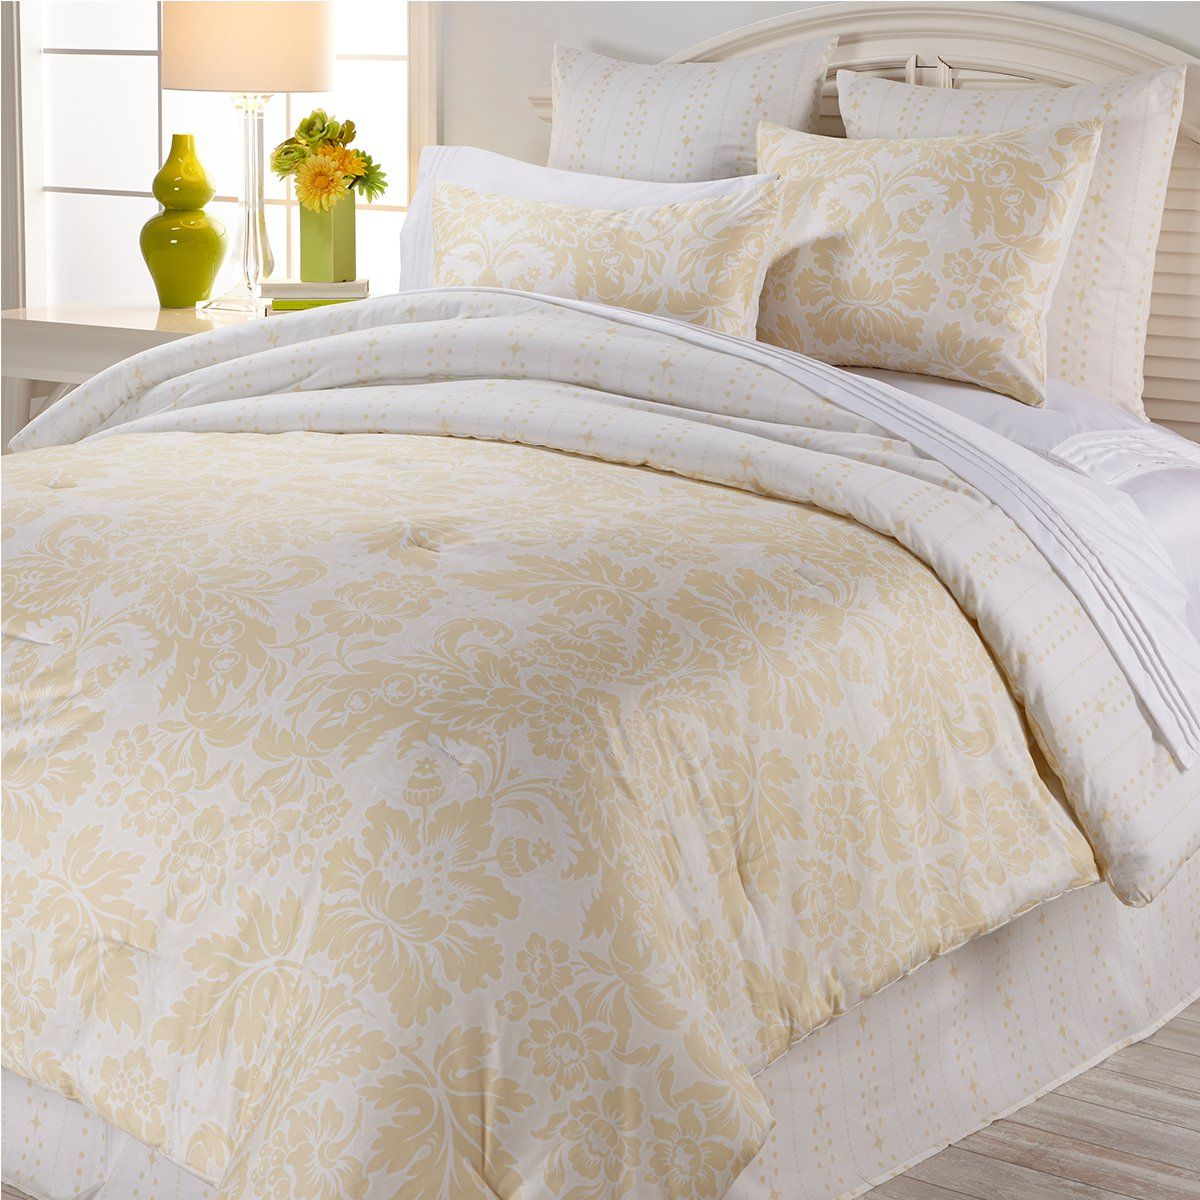 Anna Griffin Olivia 6 Piece Cotton Comforter Set Hsn Comforter Sets Cotton Comforter Set Home Bedroom